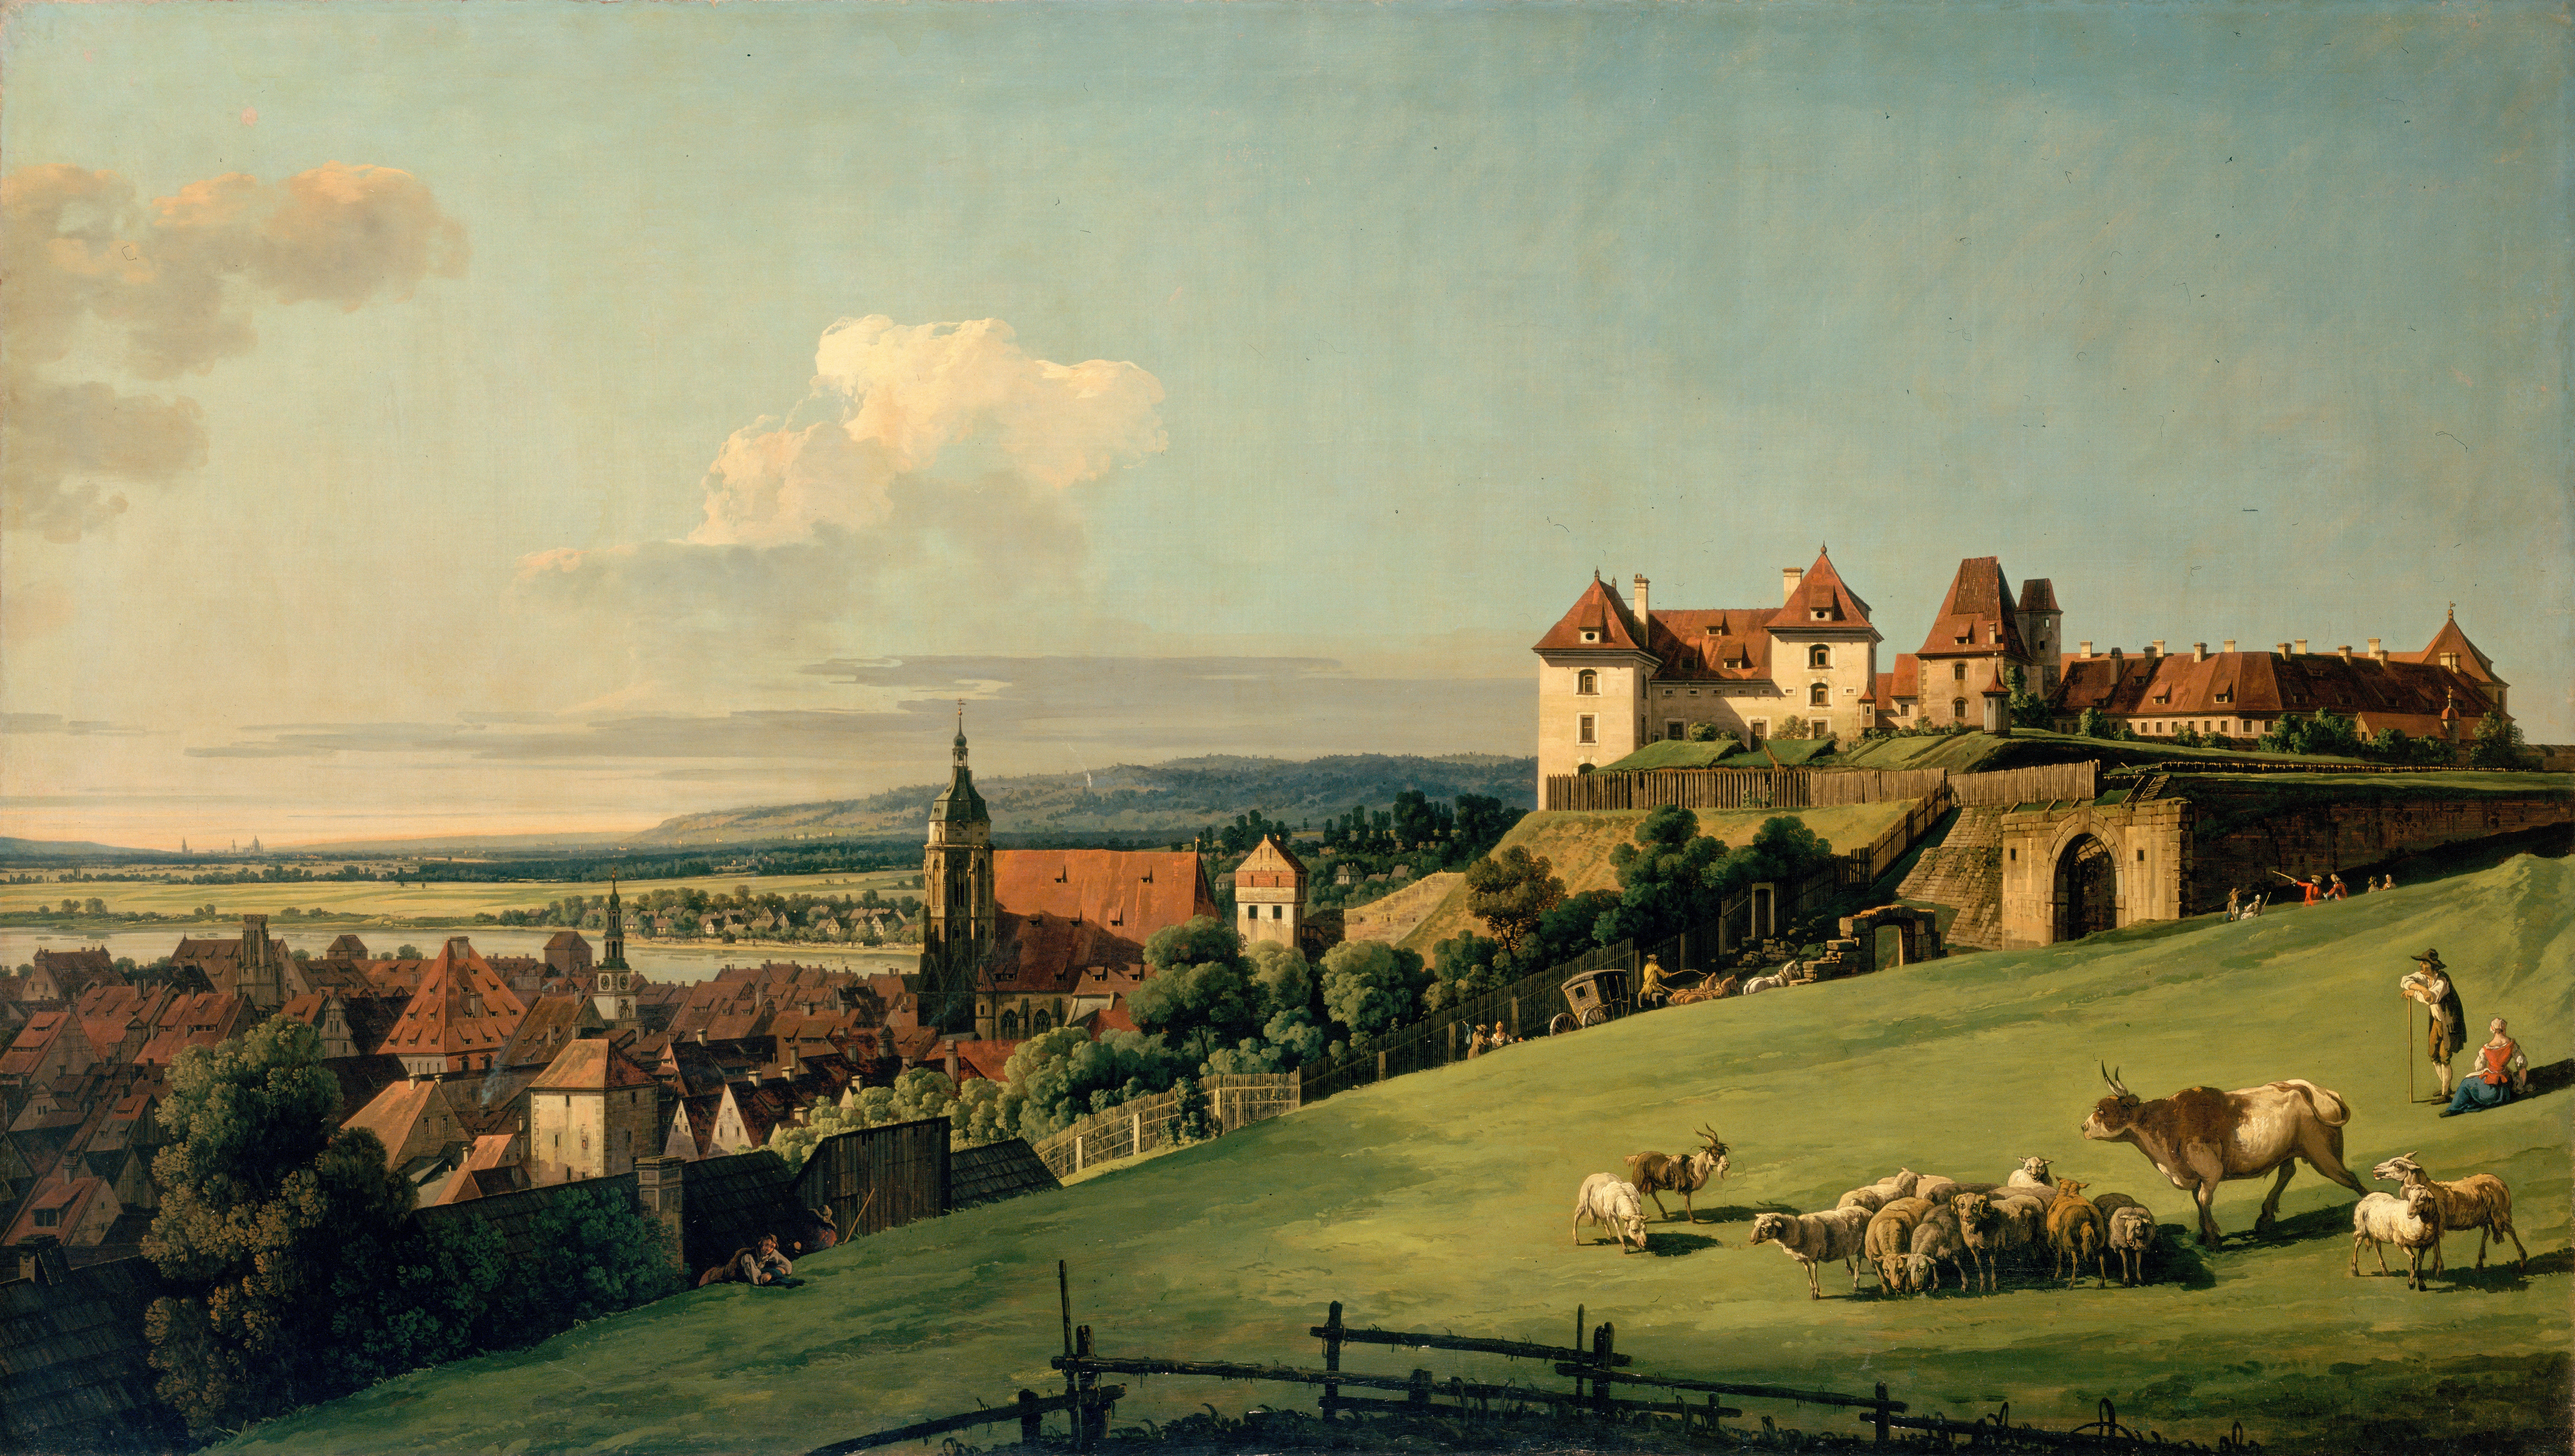 http://upload.wikimedia.org/wikipedia/commons/5/56/Bellotto%2C_Bernardo_-_View_of_Pirna_from_the_Sonnenstein_Castle.jpg